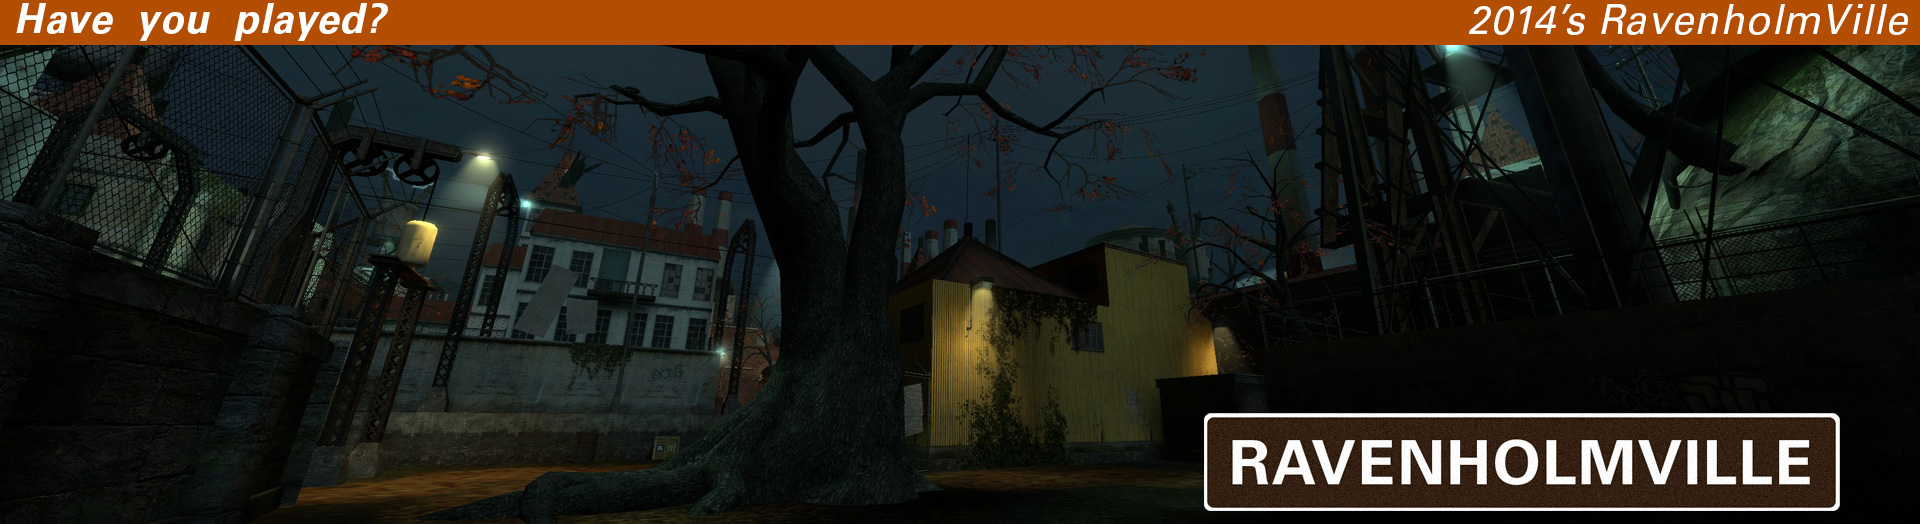 Have you played RavenholmVille?